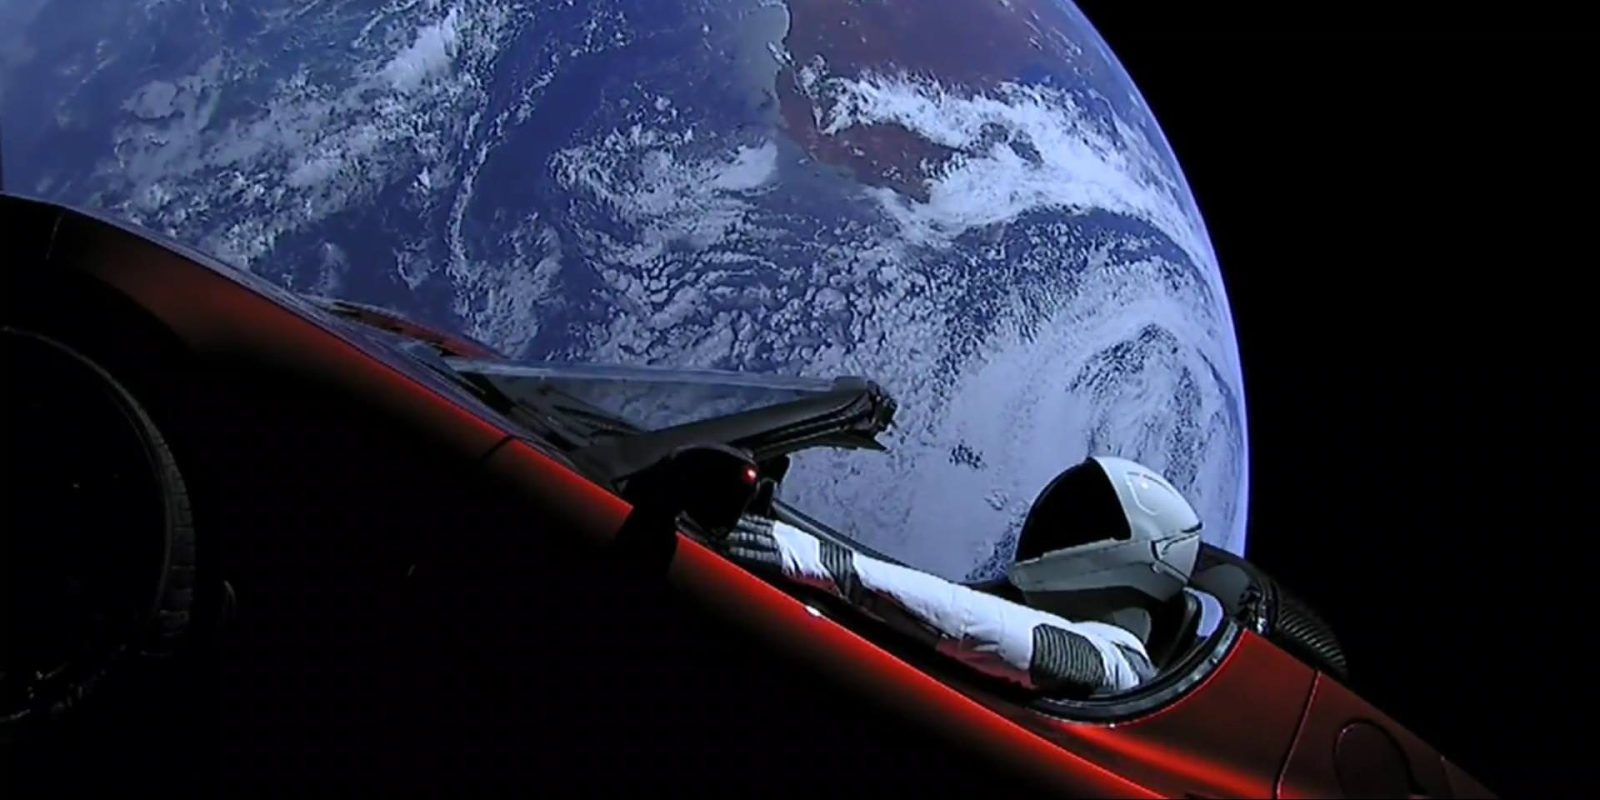 Tesla Roadster with 'Starman' completes first orbit around the sun